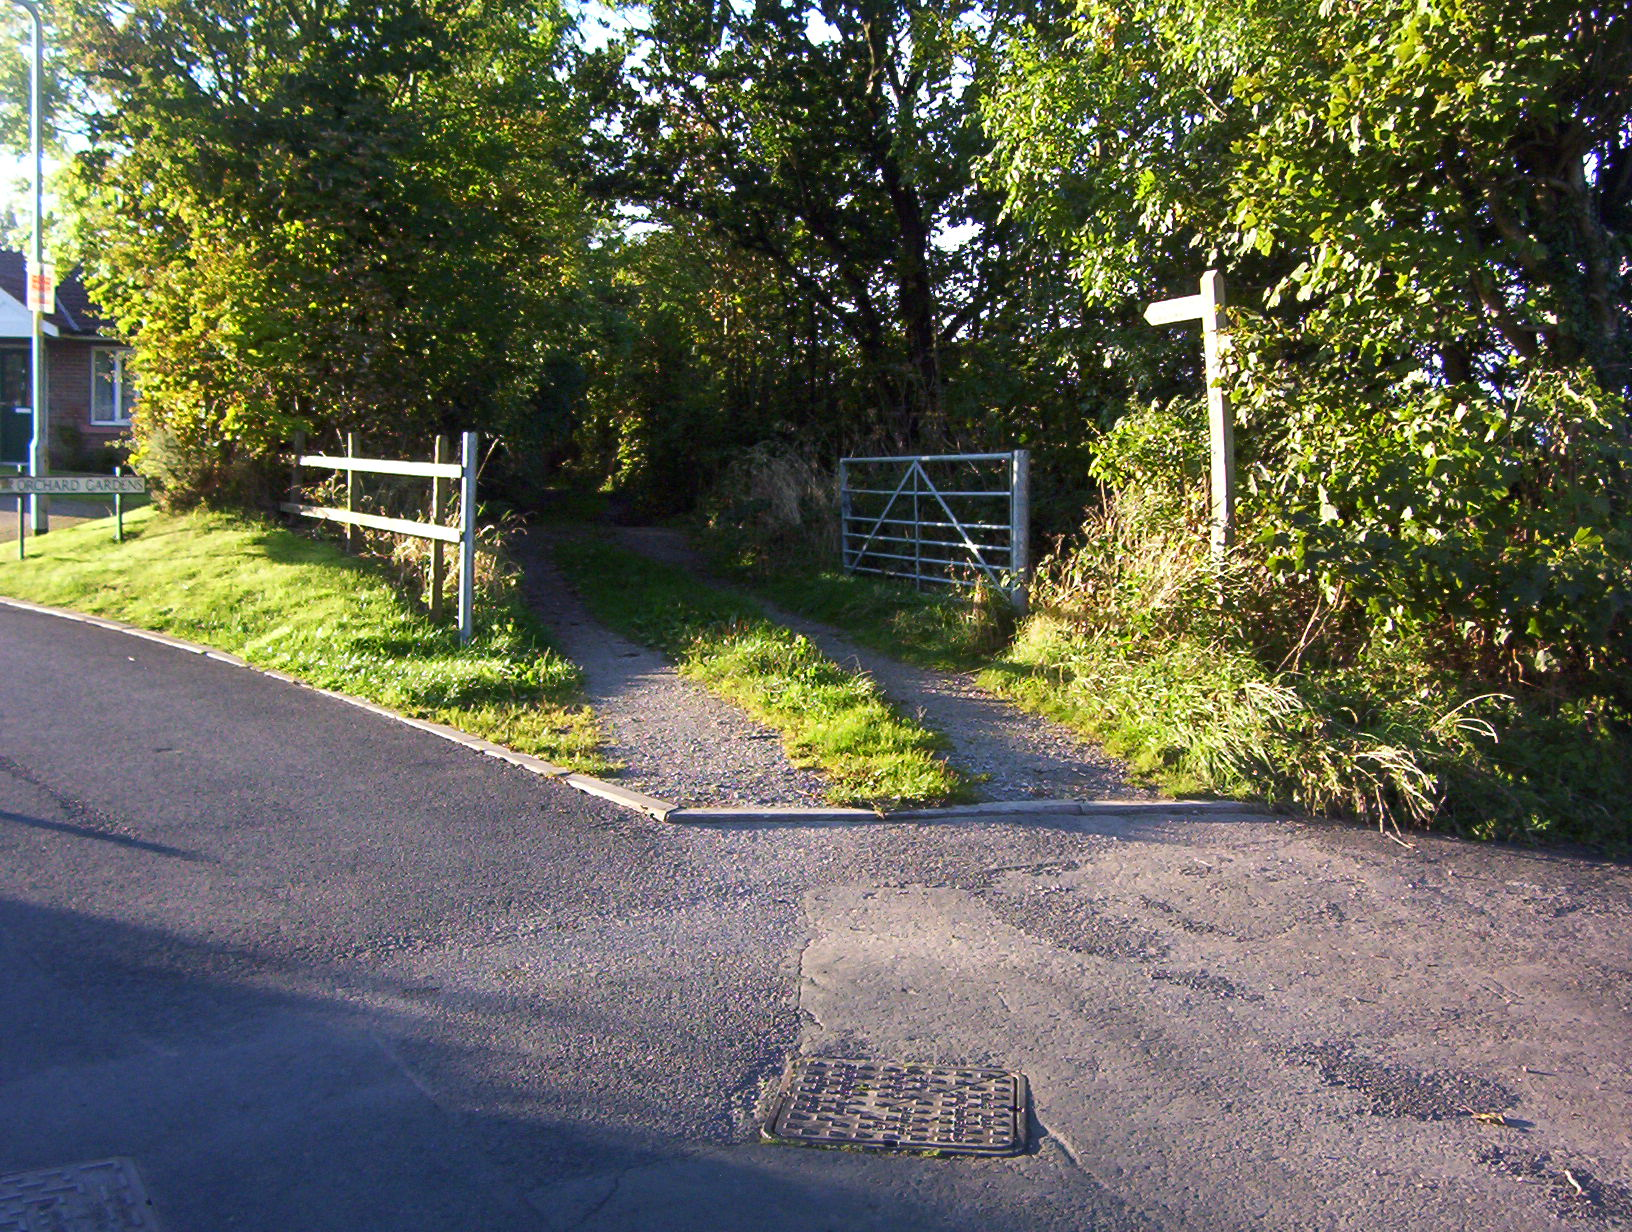 Houghton - Kingstown Link (Start of Footpath at Houghton)